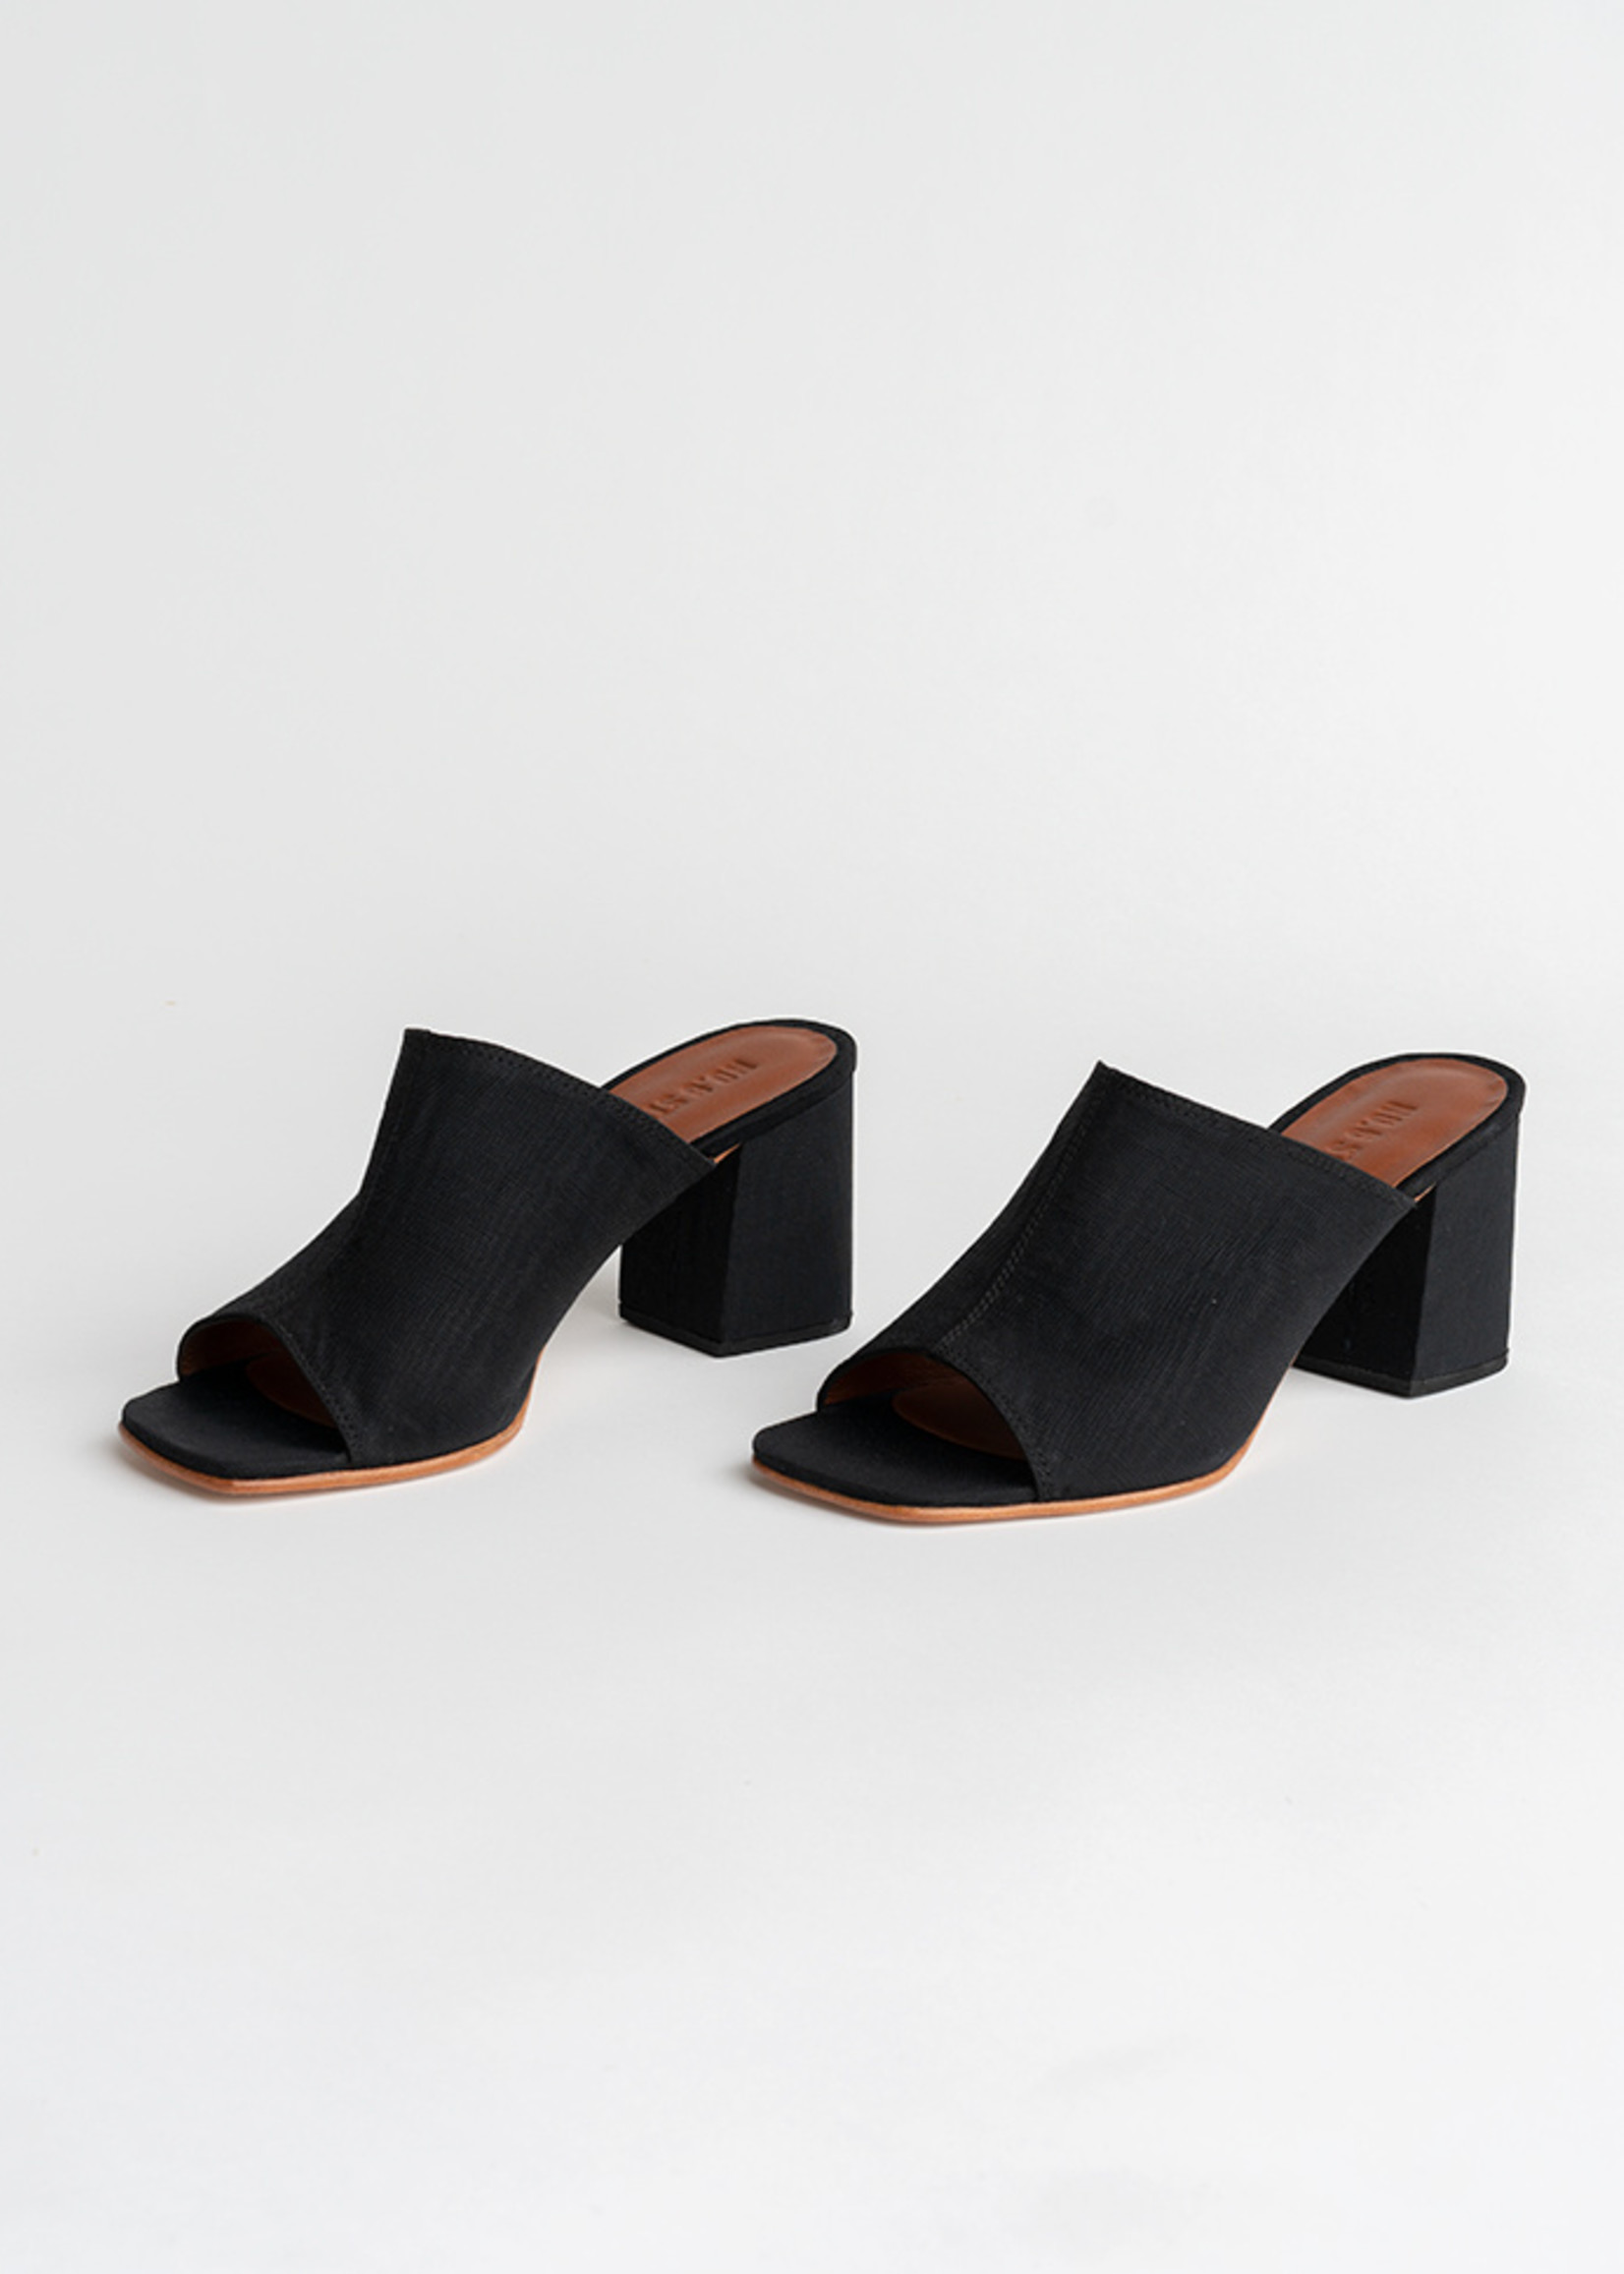 Dora Mule in Black Moire